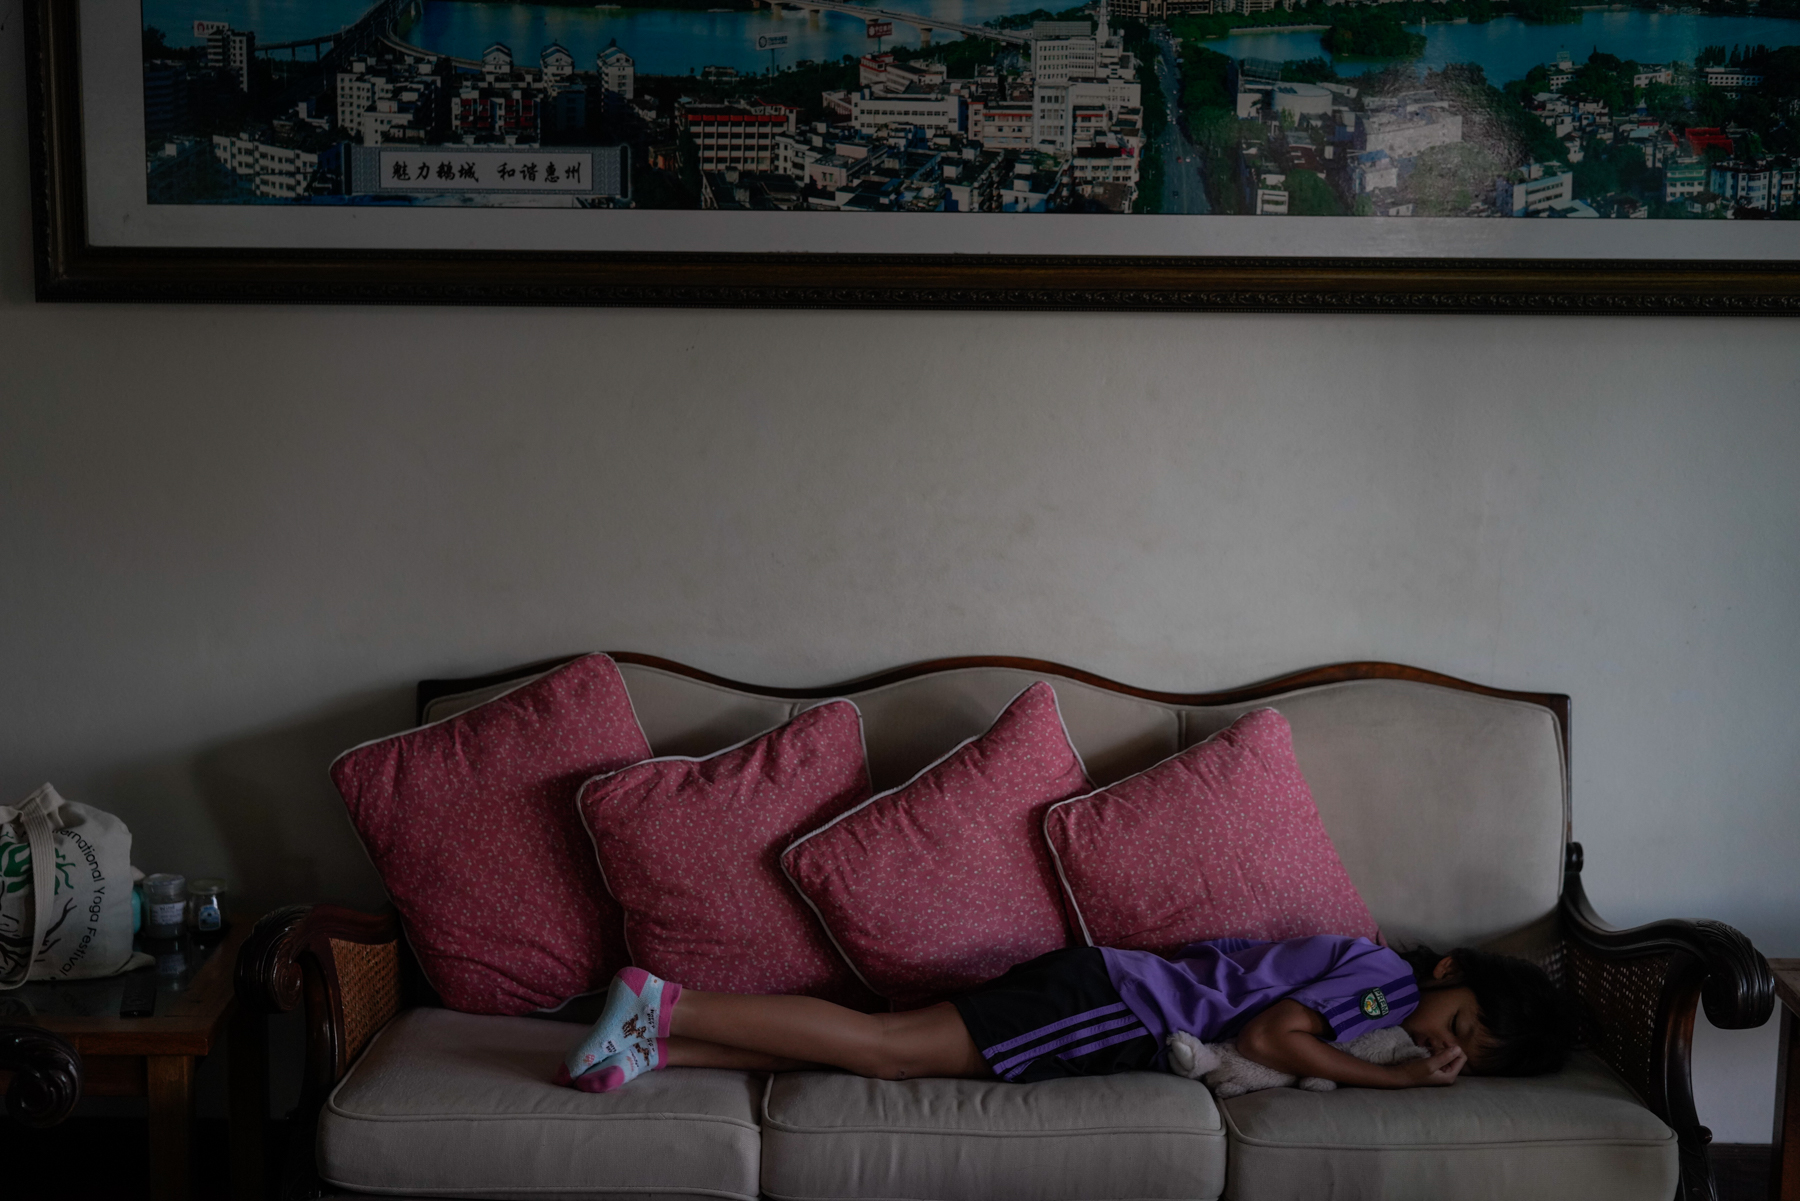 A little after 7:00 a.m., six-year-old Diandian lies on her living room couch before her mother Ding brings her and her 11-year-old brother to school, January 16, 2019.